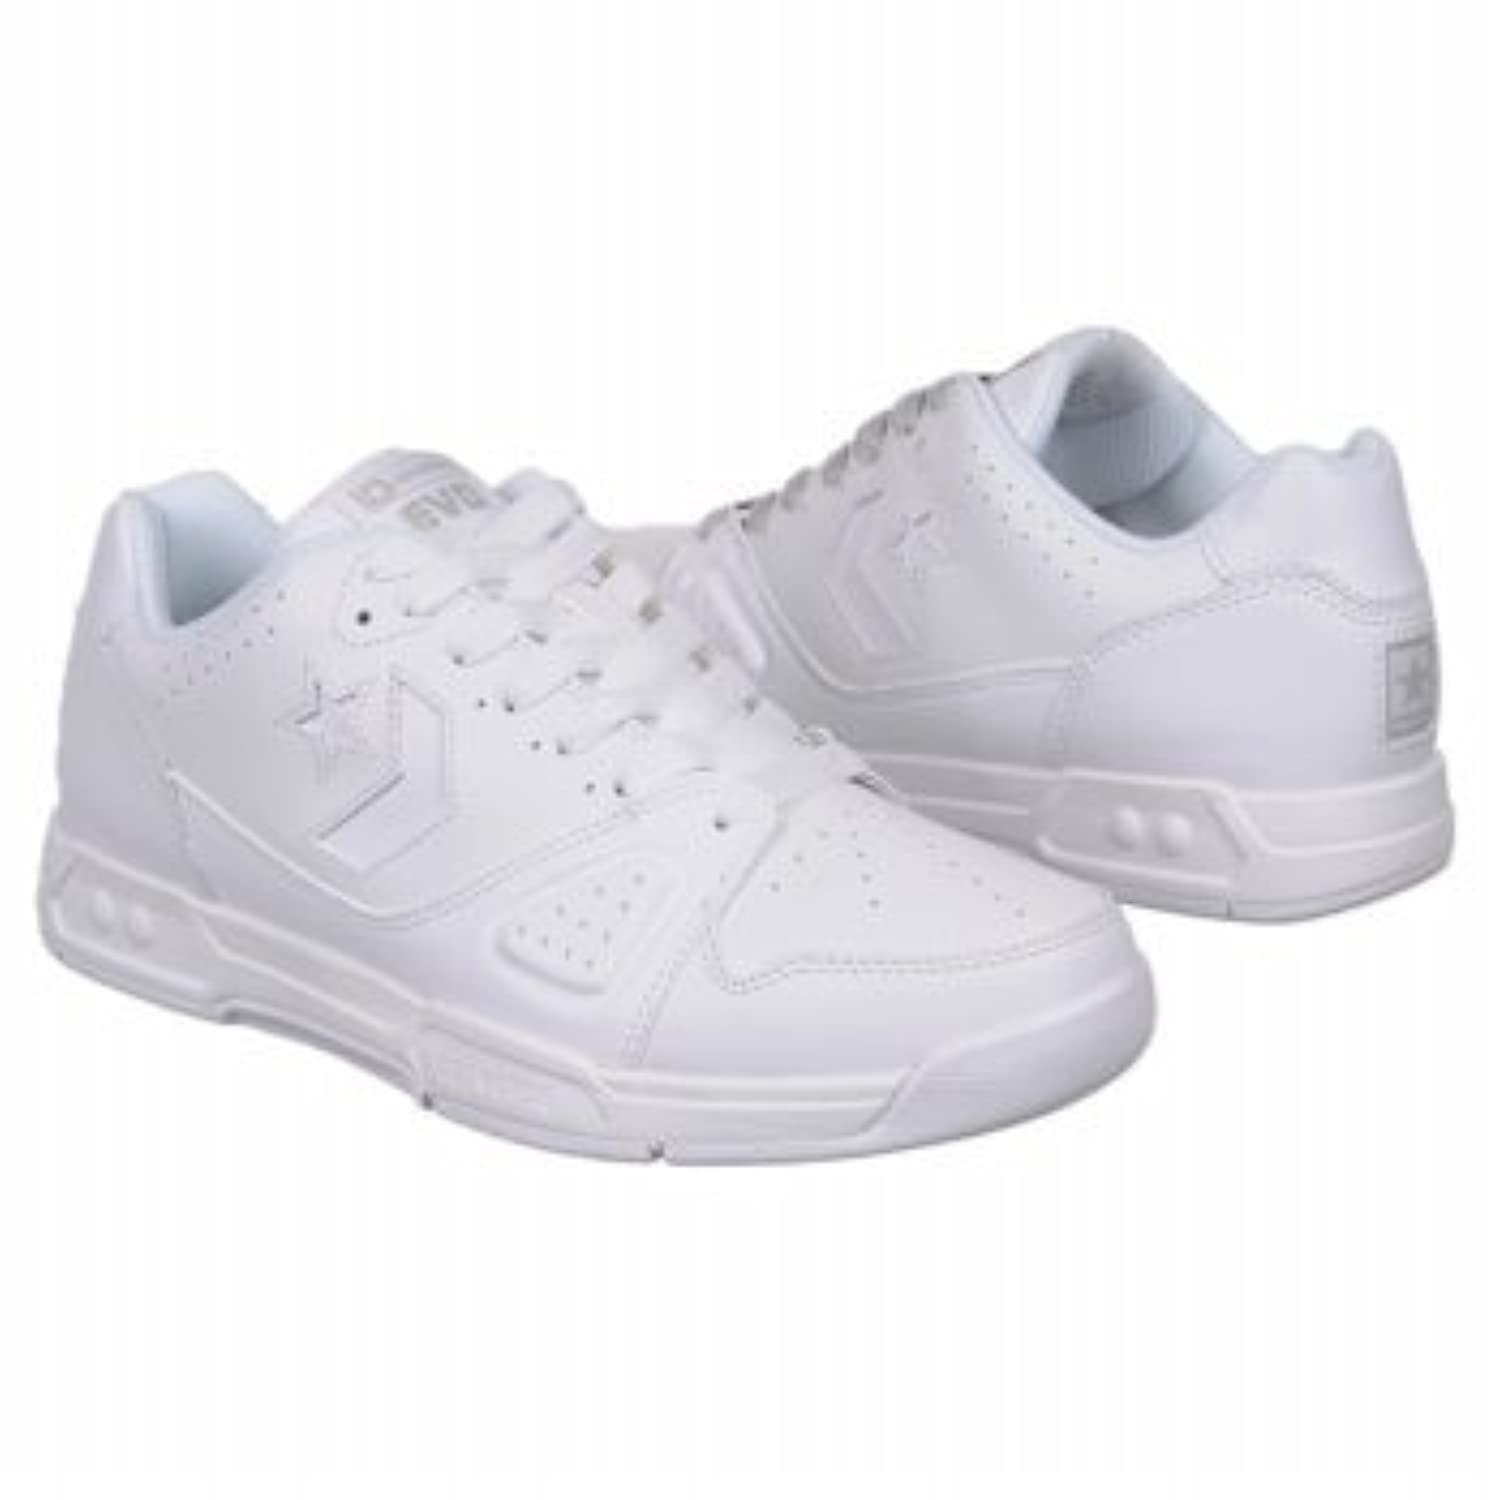 Converse Drop Step Low New Shoes White Sneakers Men Size Ox 116995 (7.5)